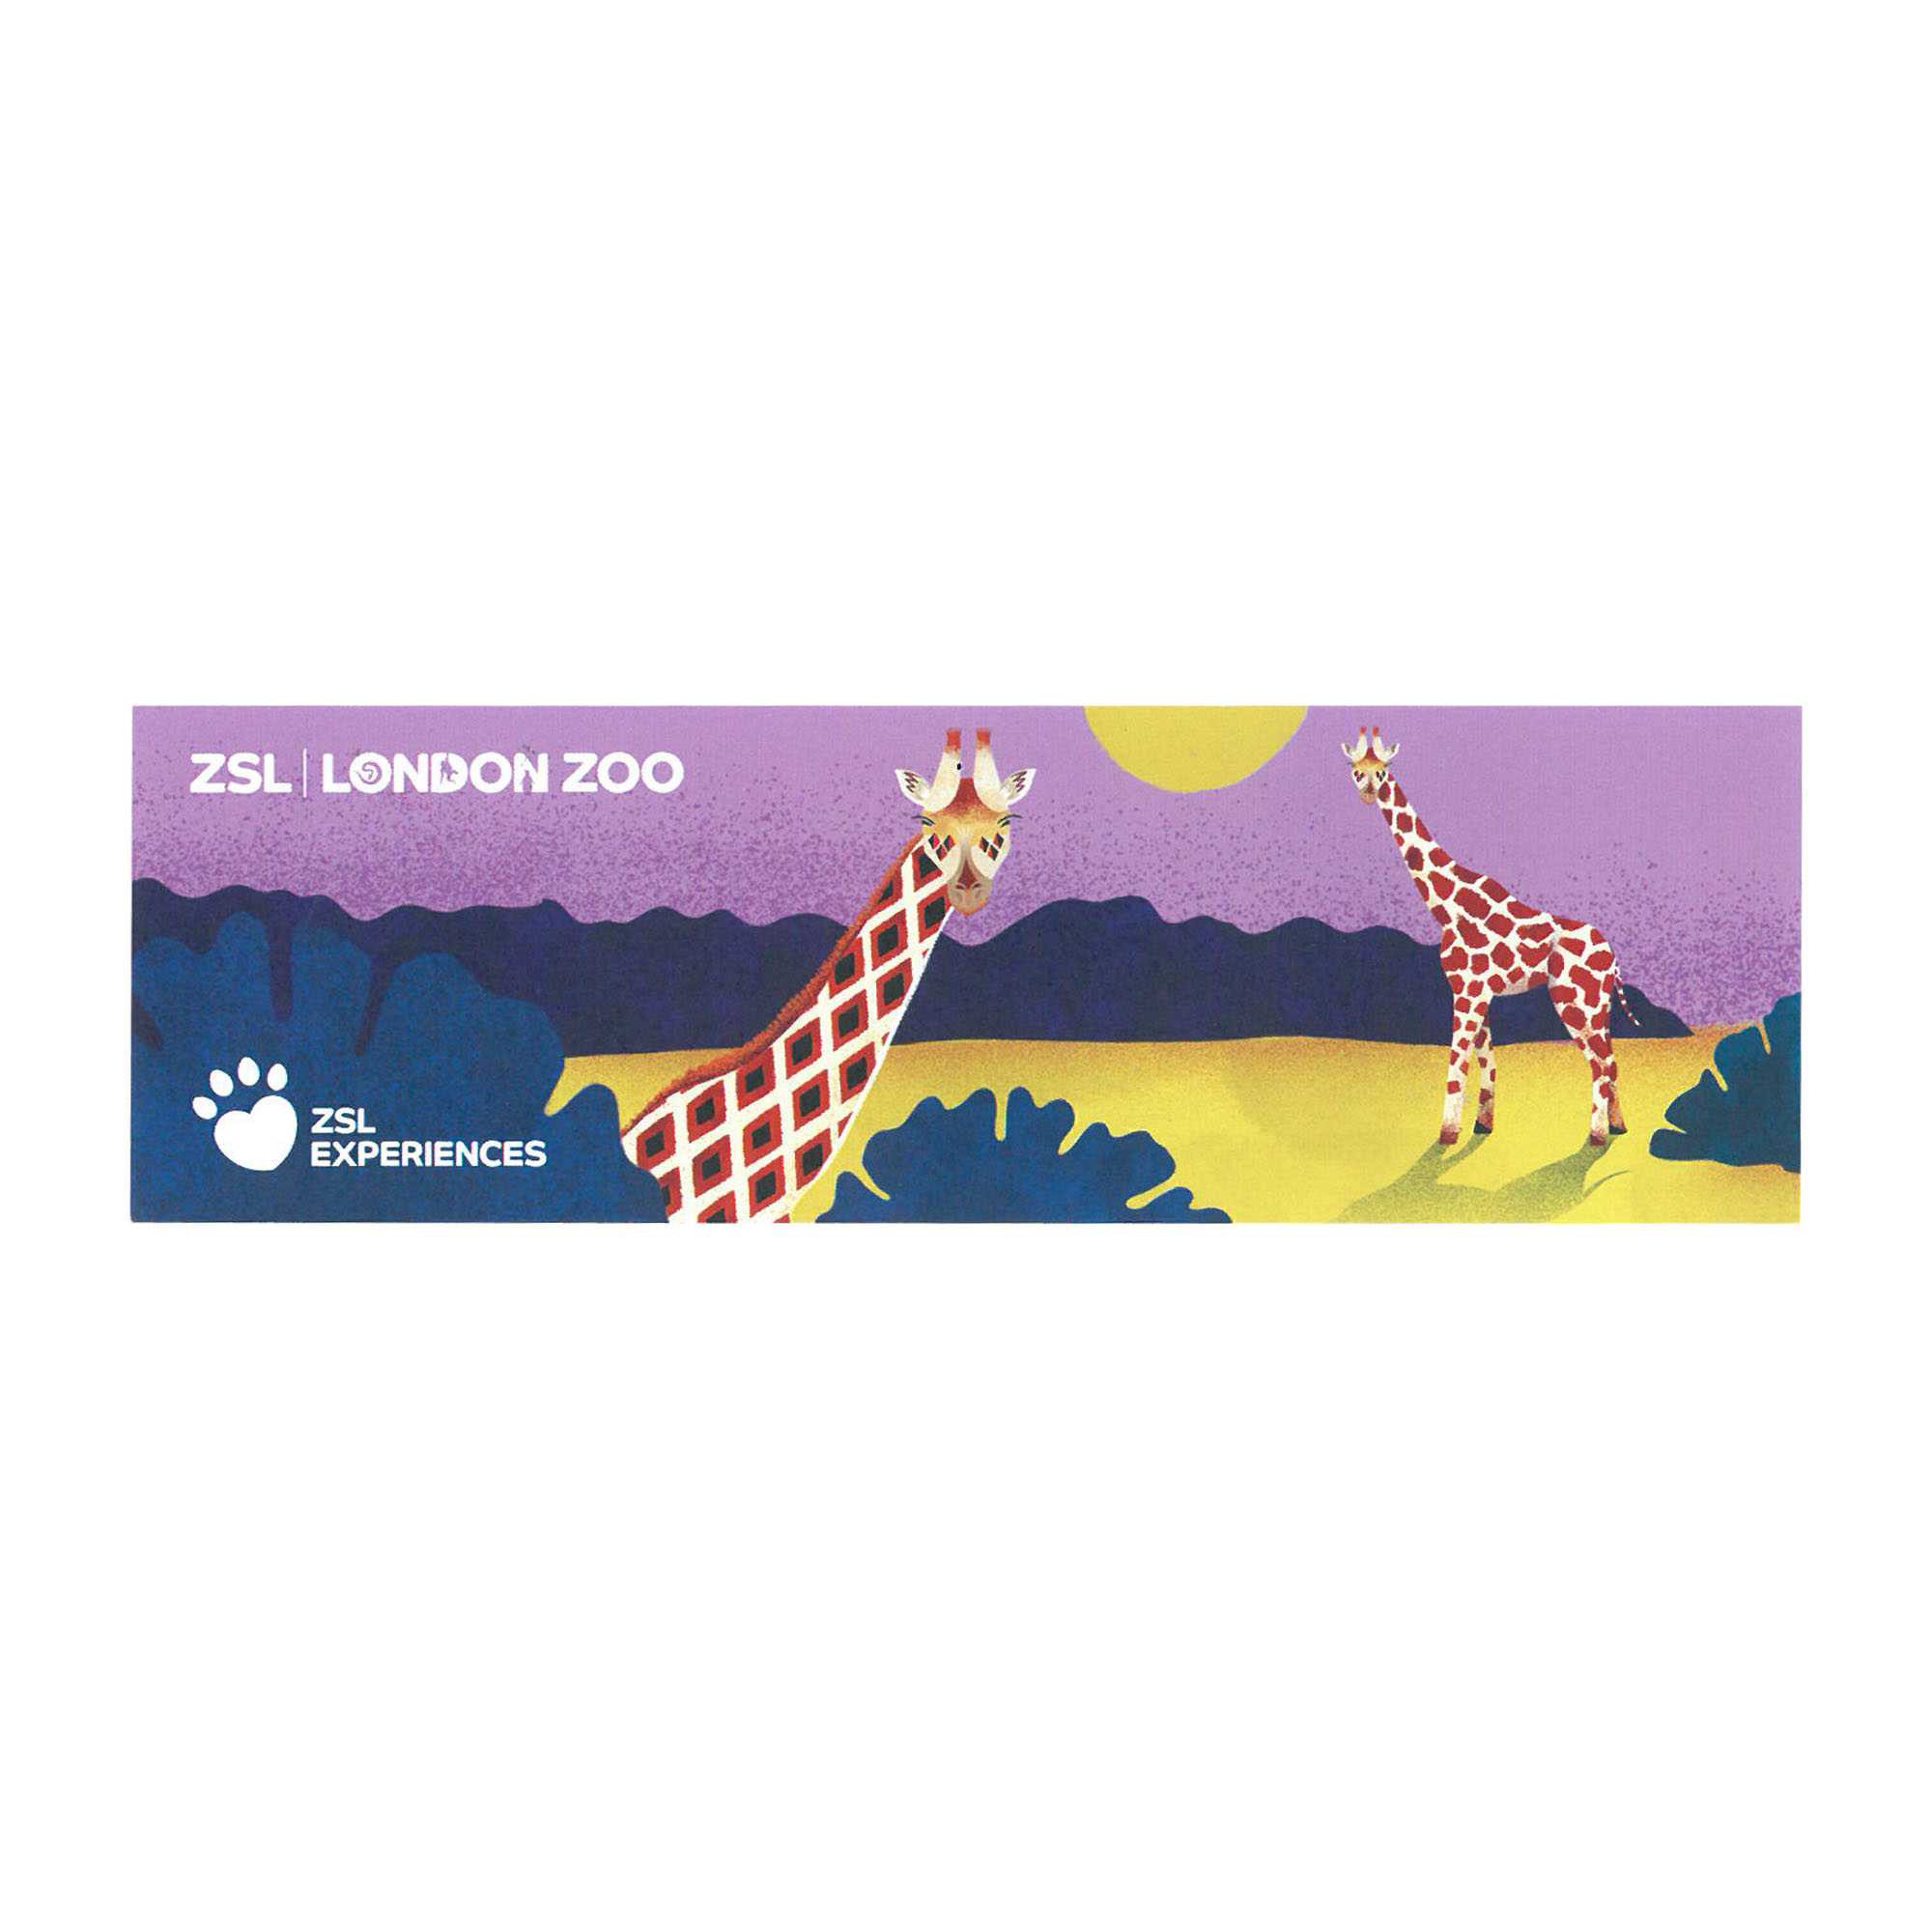 Meet the Giraffes Gift Experience at ZSL London Zoo